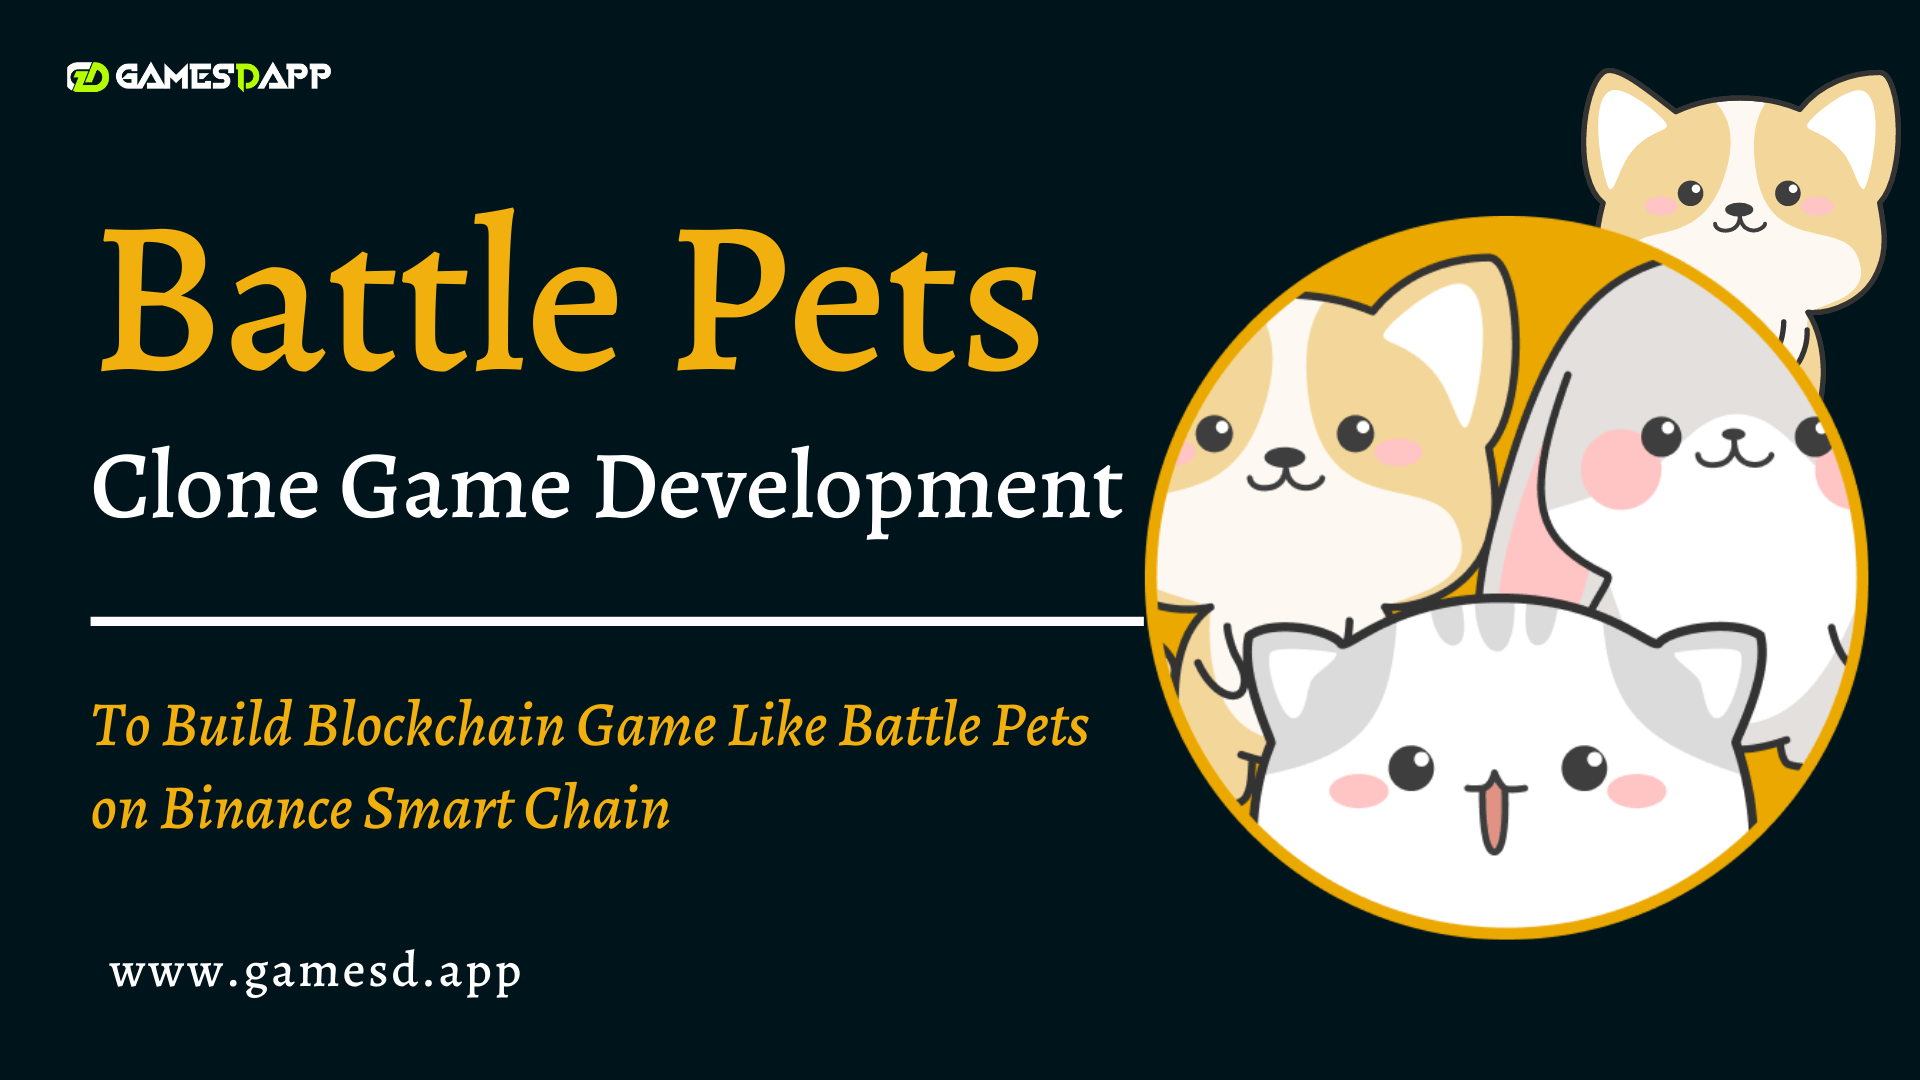 Battle Pets Game Clone Development - To Build Blockchain Game Like Battle Pets on Binance Smart Chain